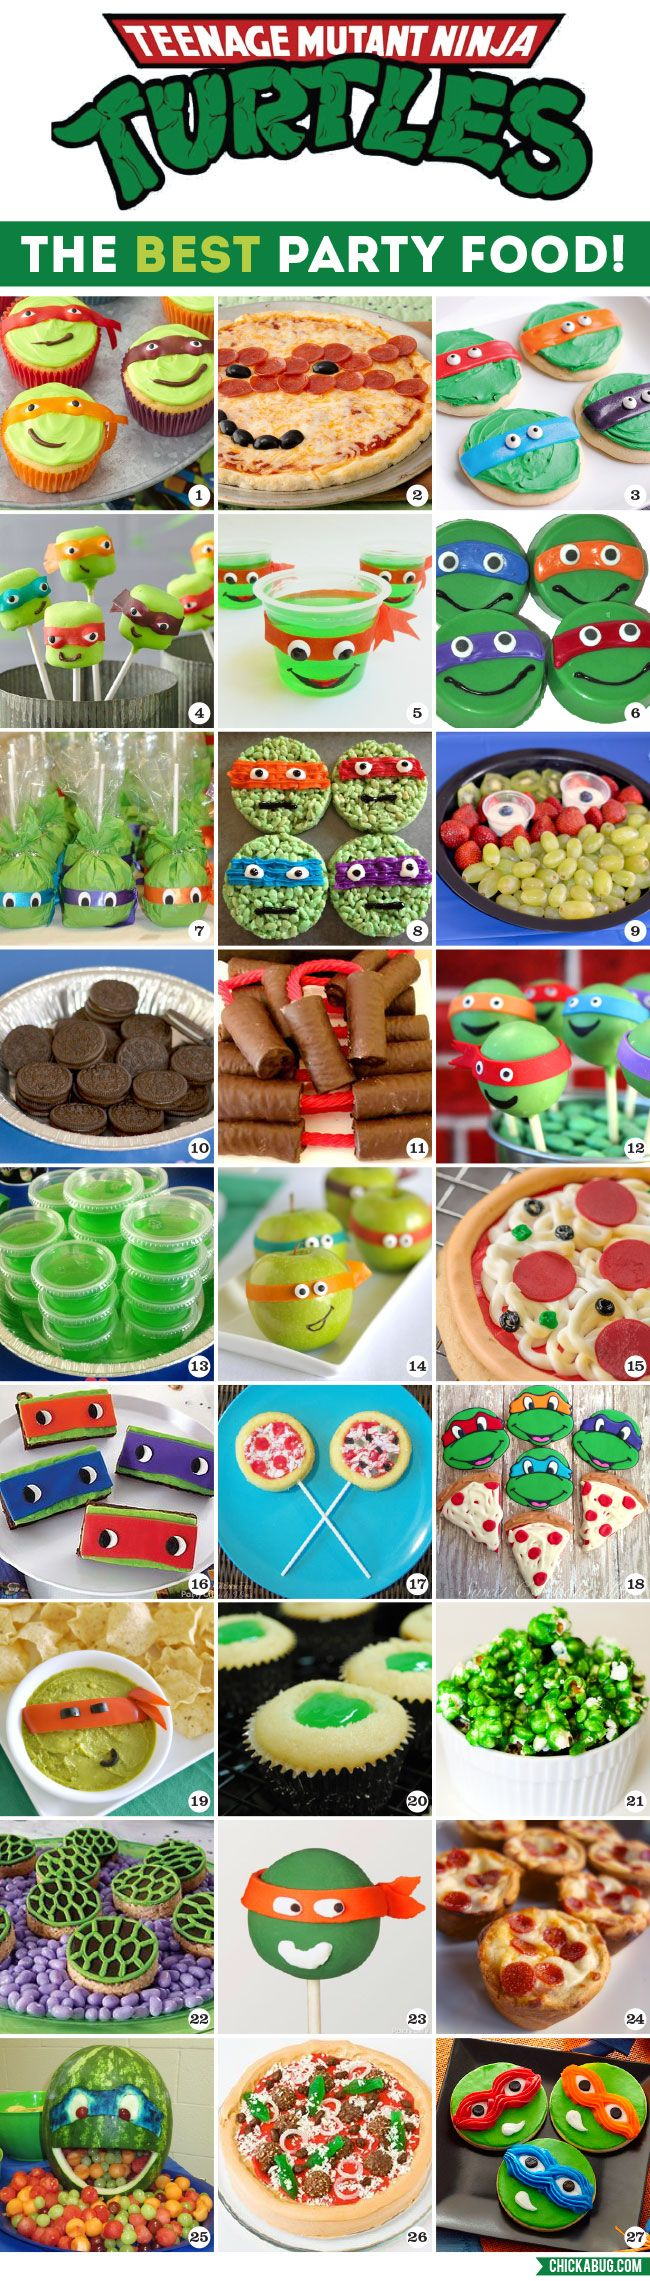 The Best Tmnt Party Food Chickabug Tmnt Party Food Ninja Turtles Birthday Party Tmnt Party